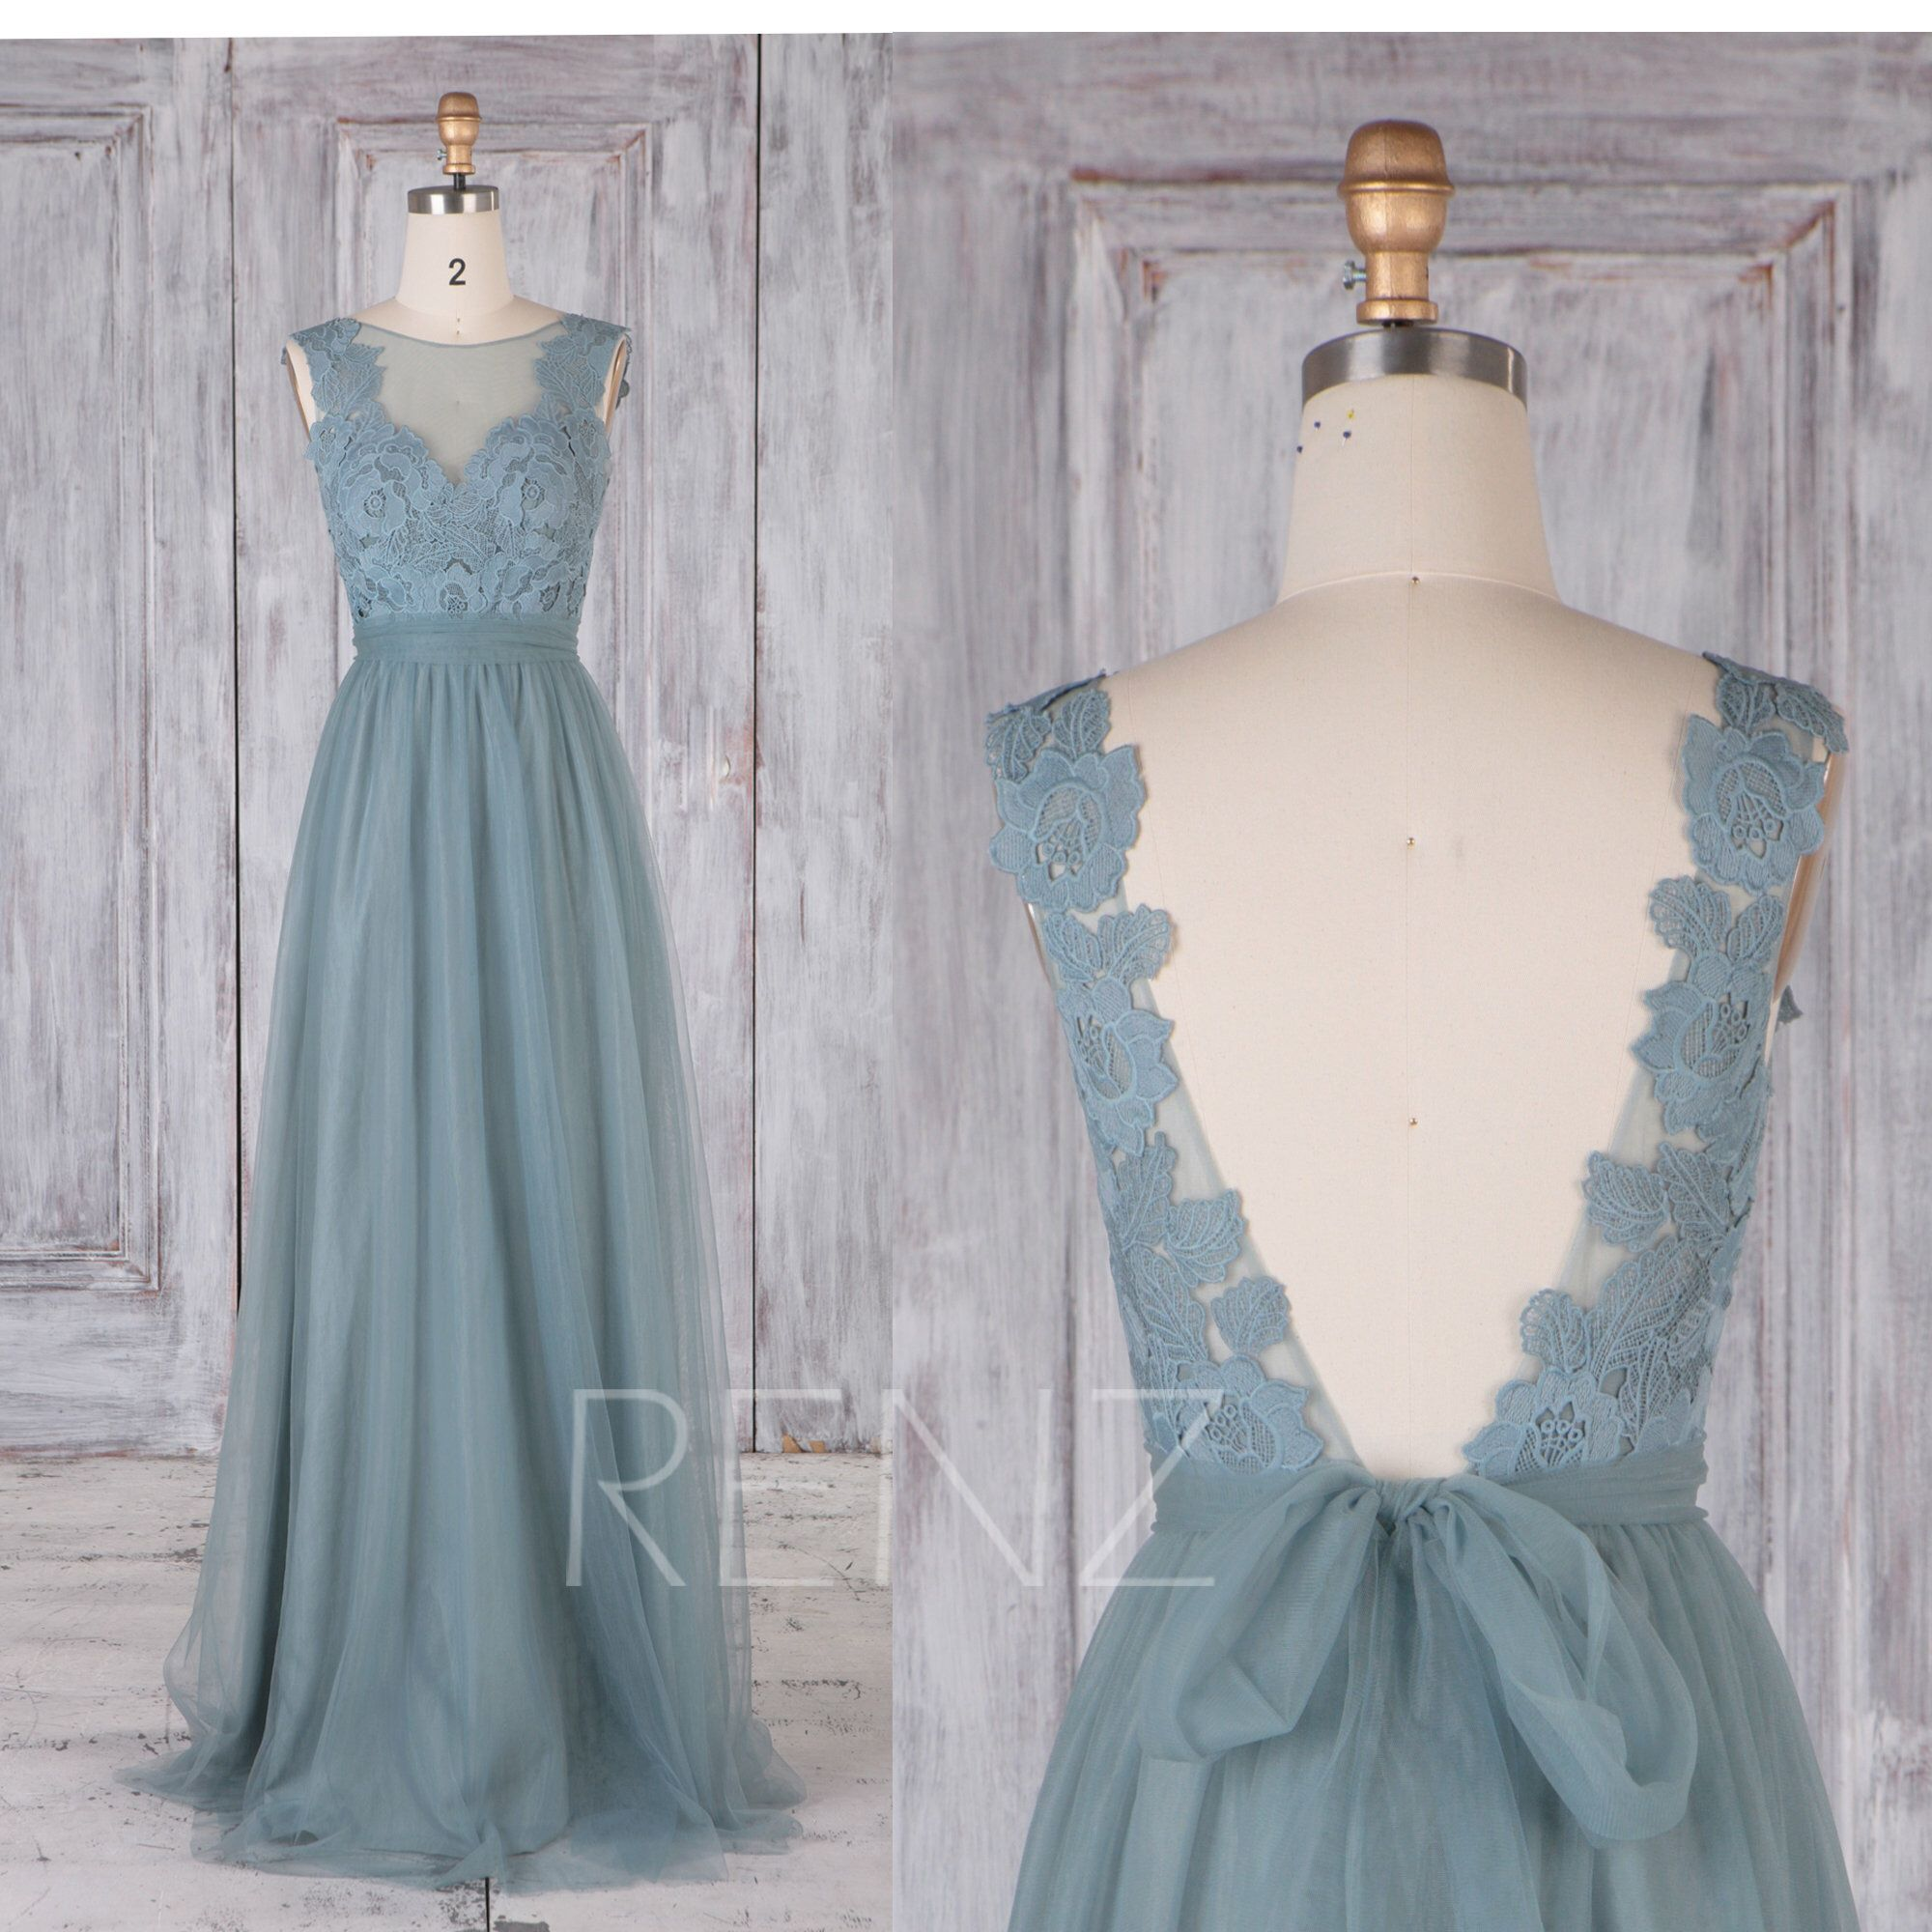 Pin by brandi binger on happily ever after pinterest dresses